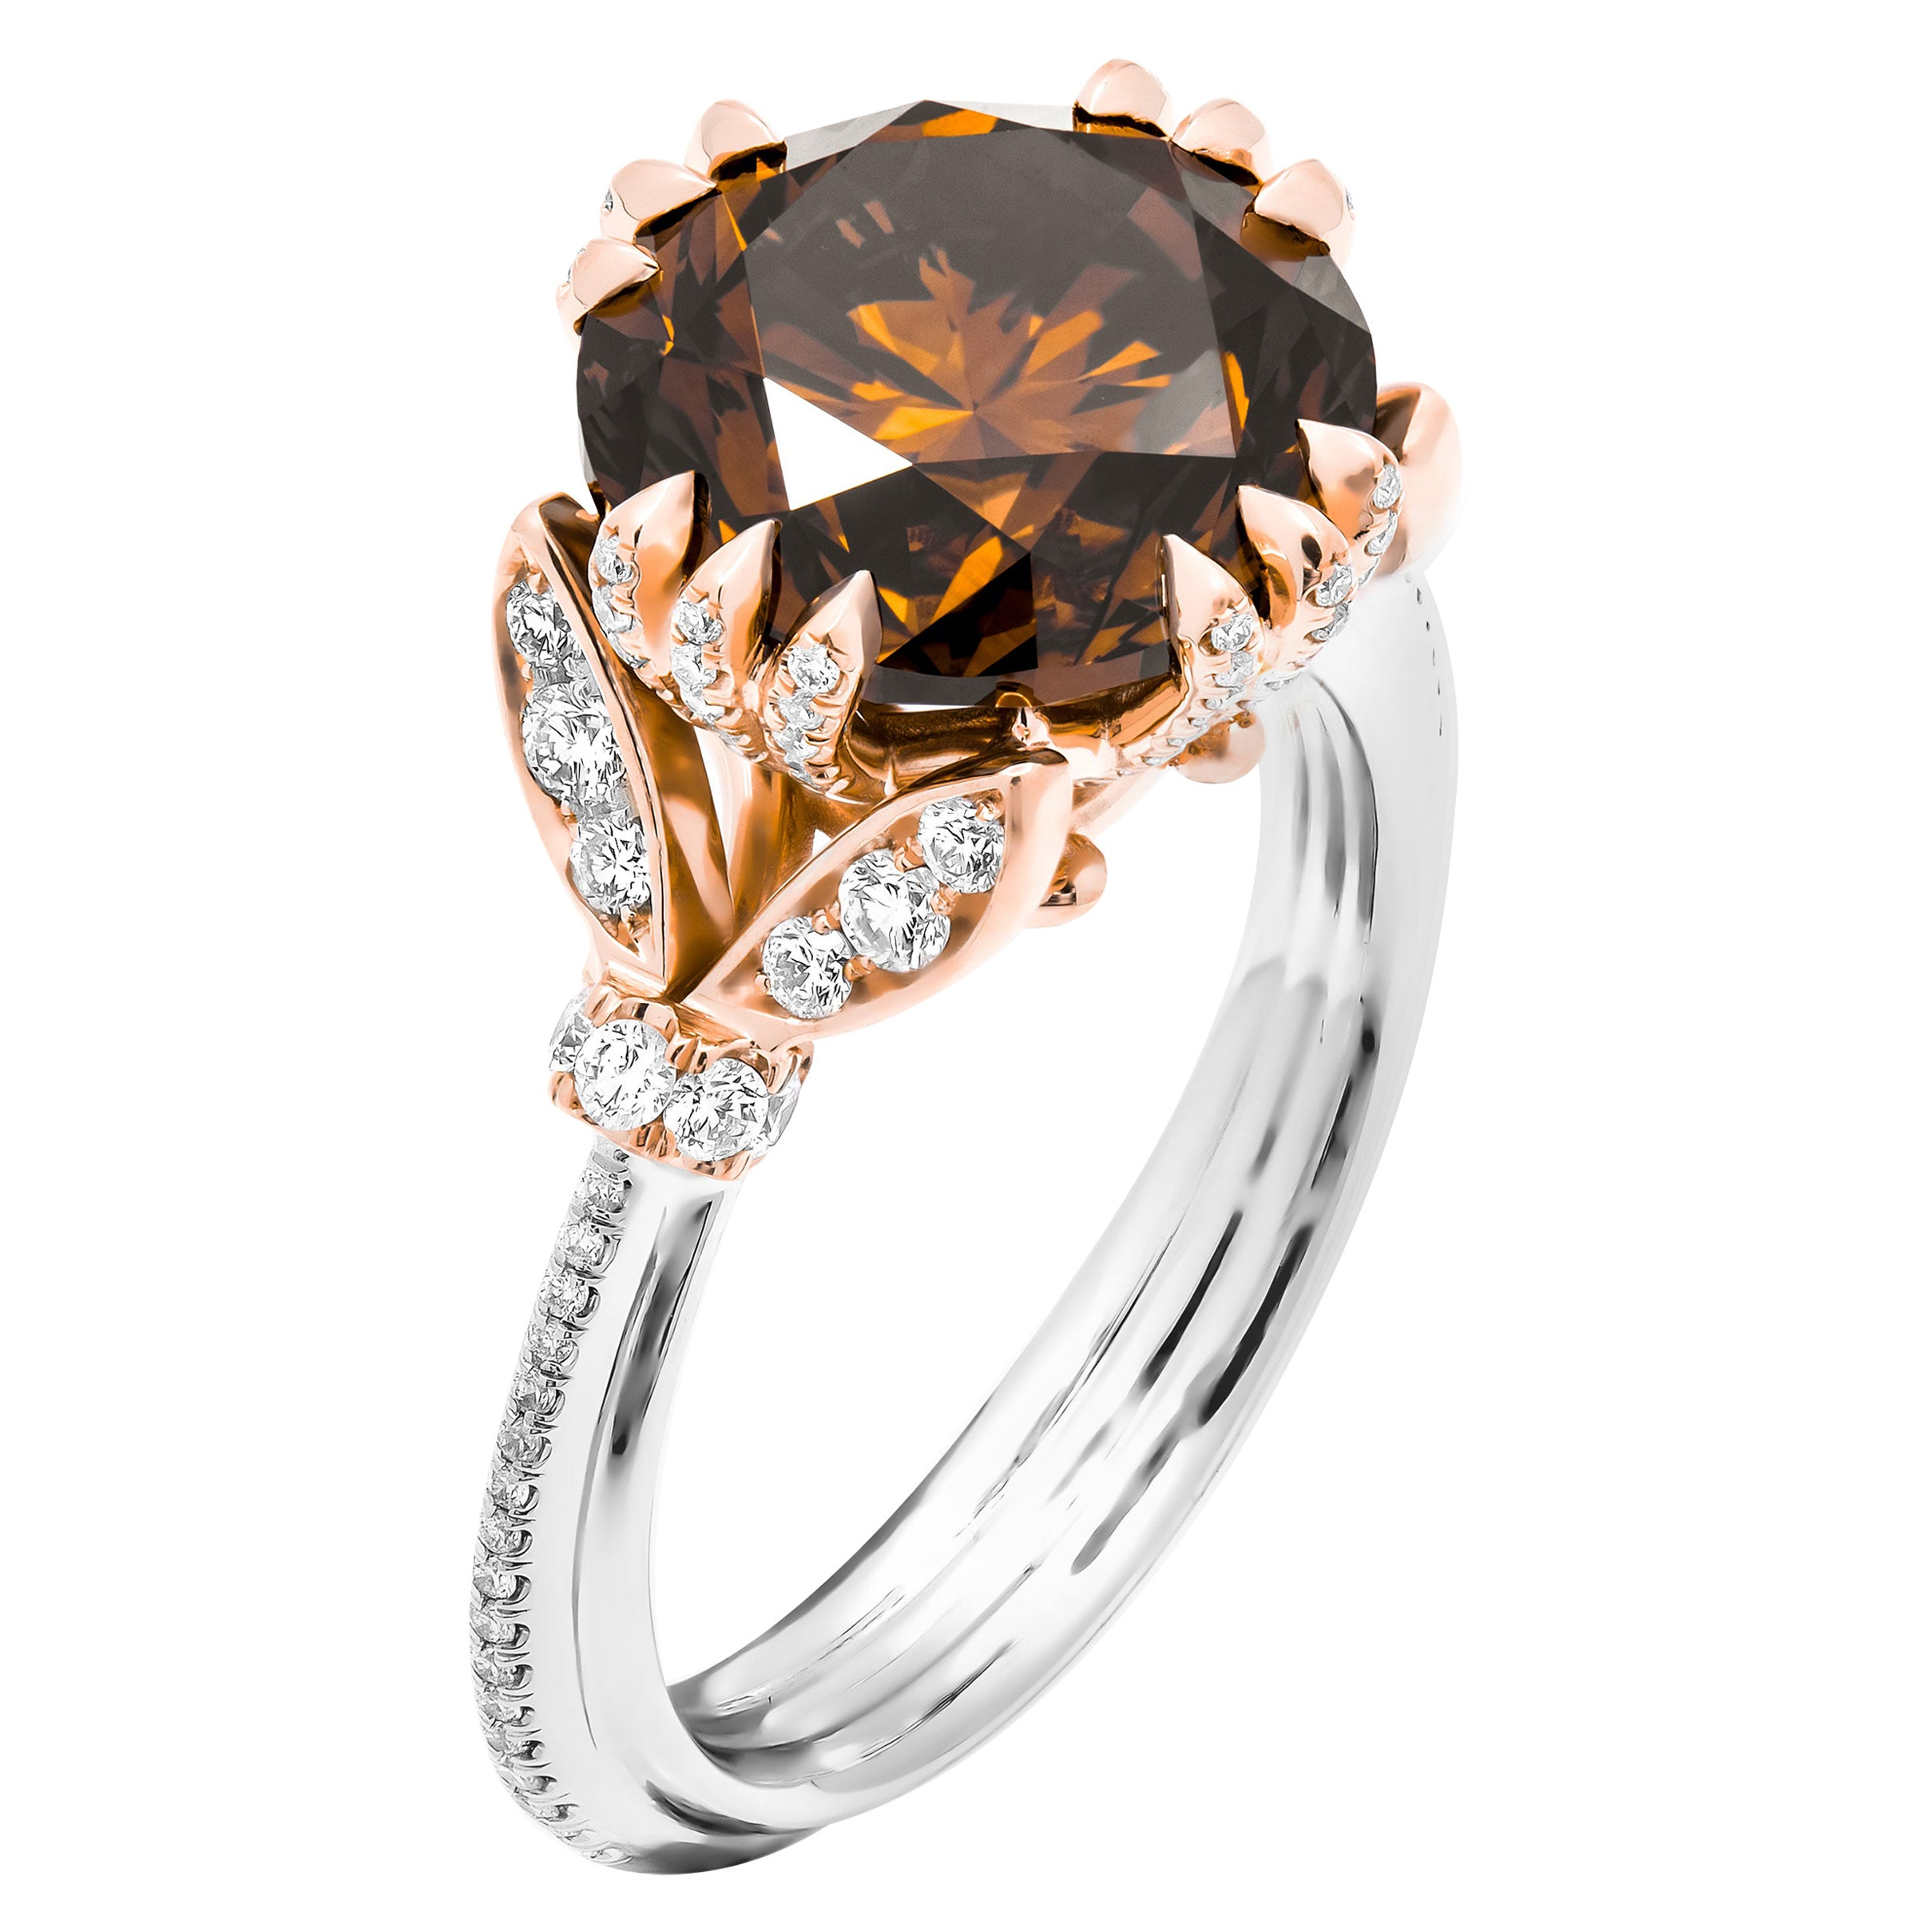 GIA Certified Fancy Orange Brown Diamond Cocktail Ring